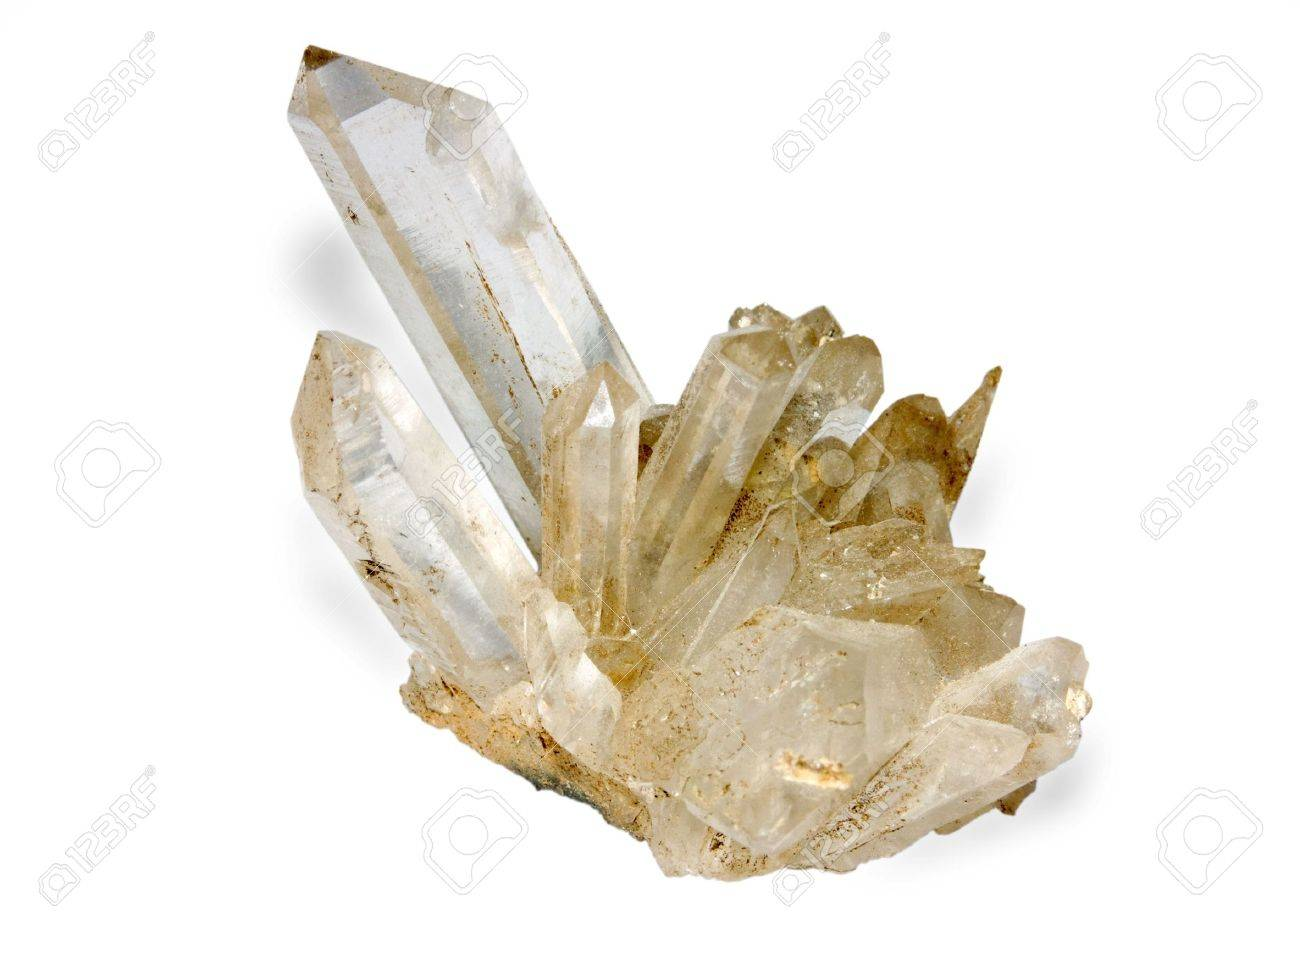 sample of the rock crystal insulated on white background Stock Photo - 3456342